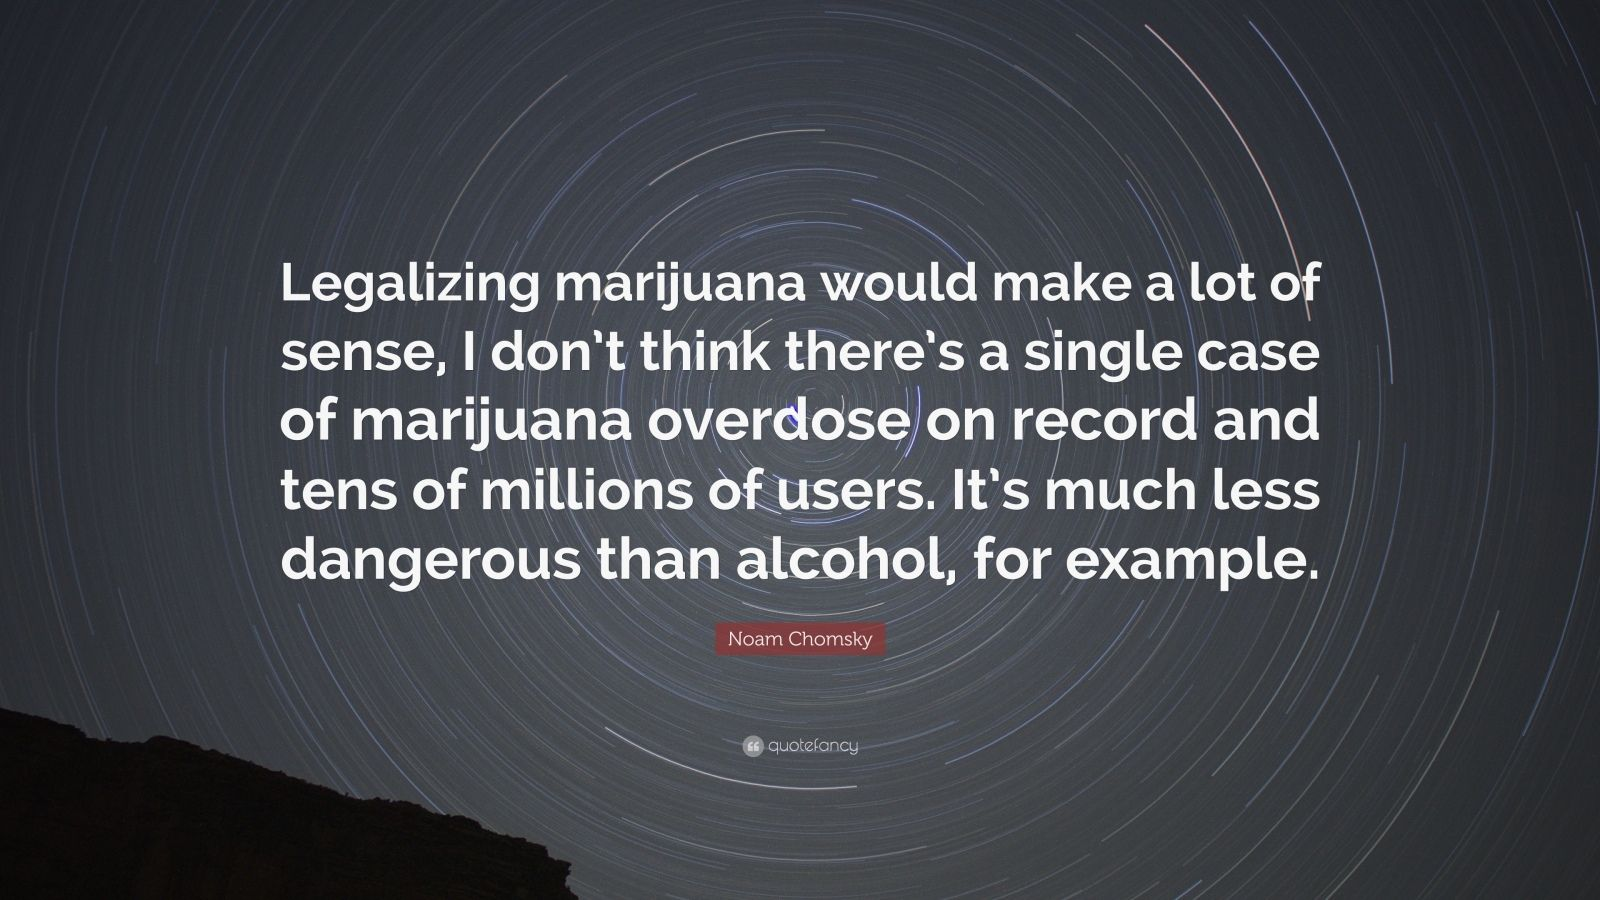 "Noam Chomsky Quote: ""Legalizing marijuana would make a lot of sense, I don't think there's a single case of marijuana overdose on record and tens of millions of users. It's much less dangerous than alcohol, for example."""